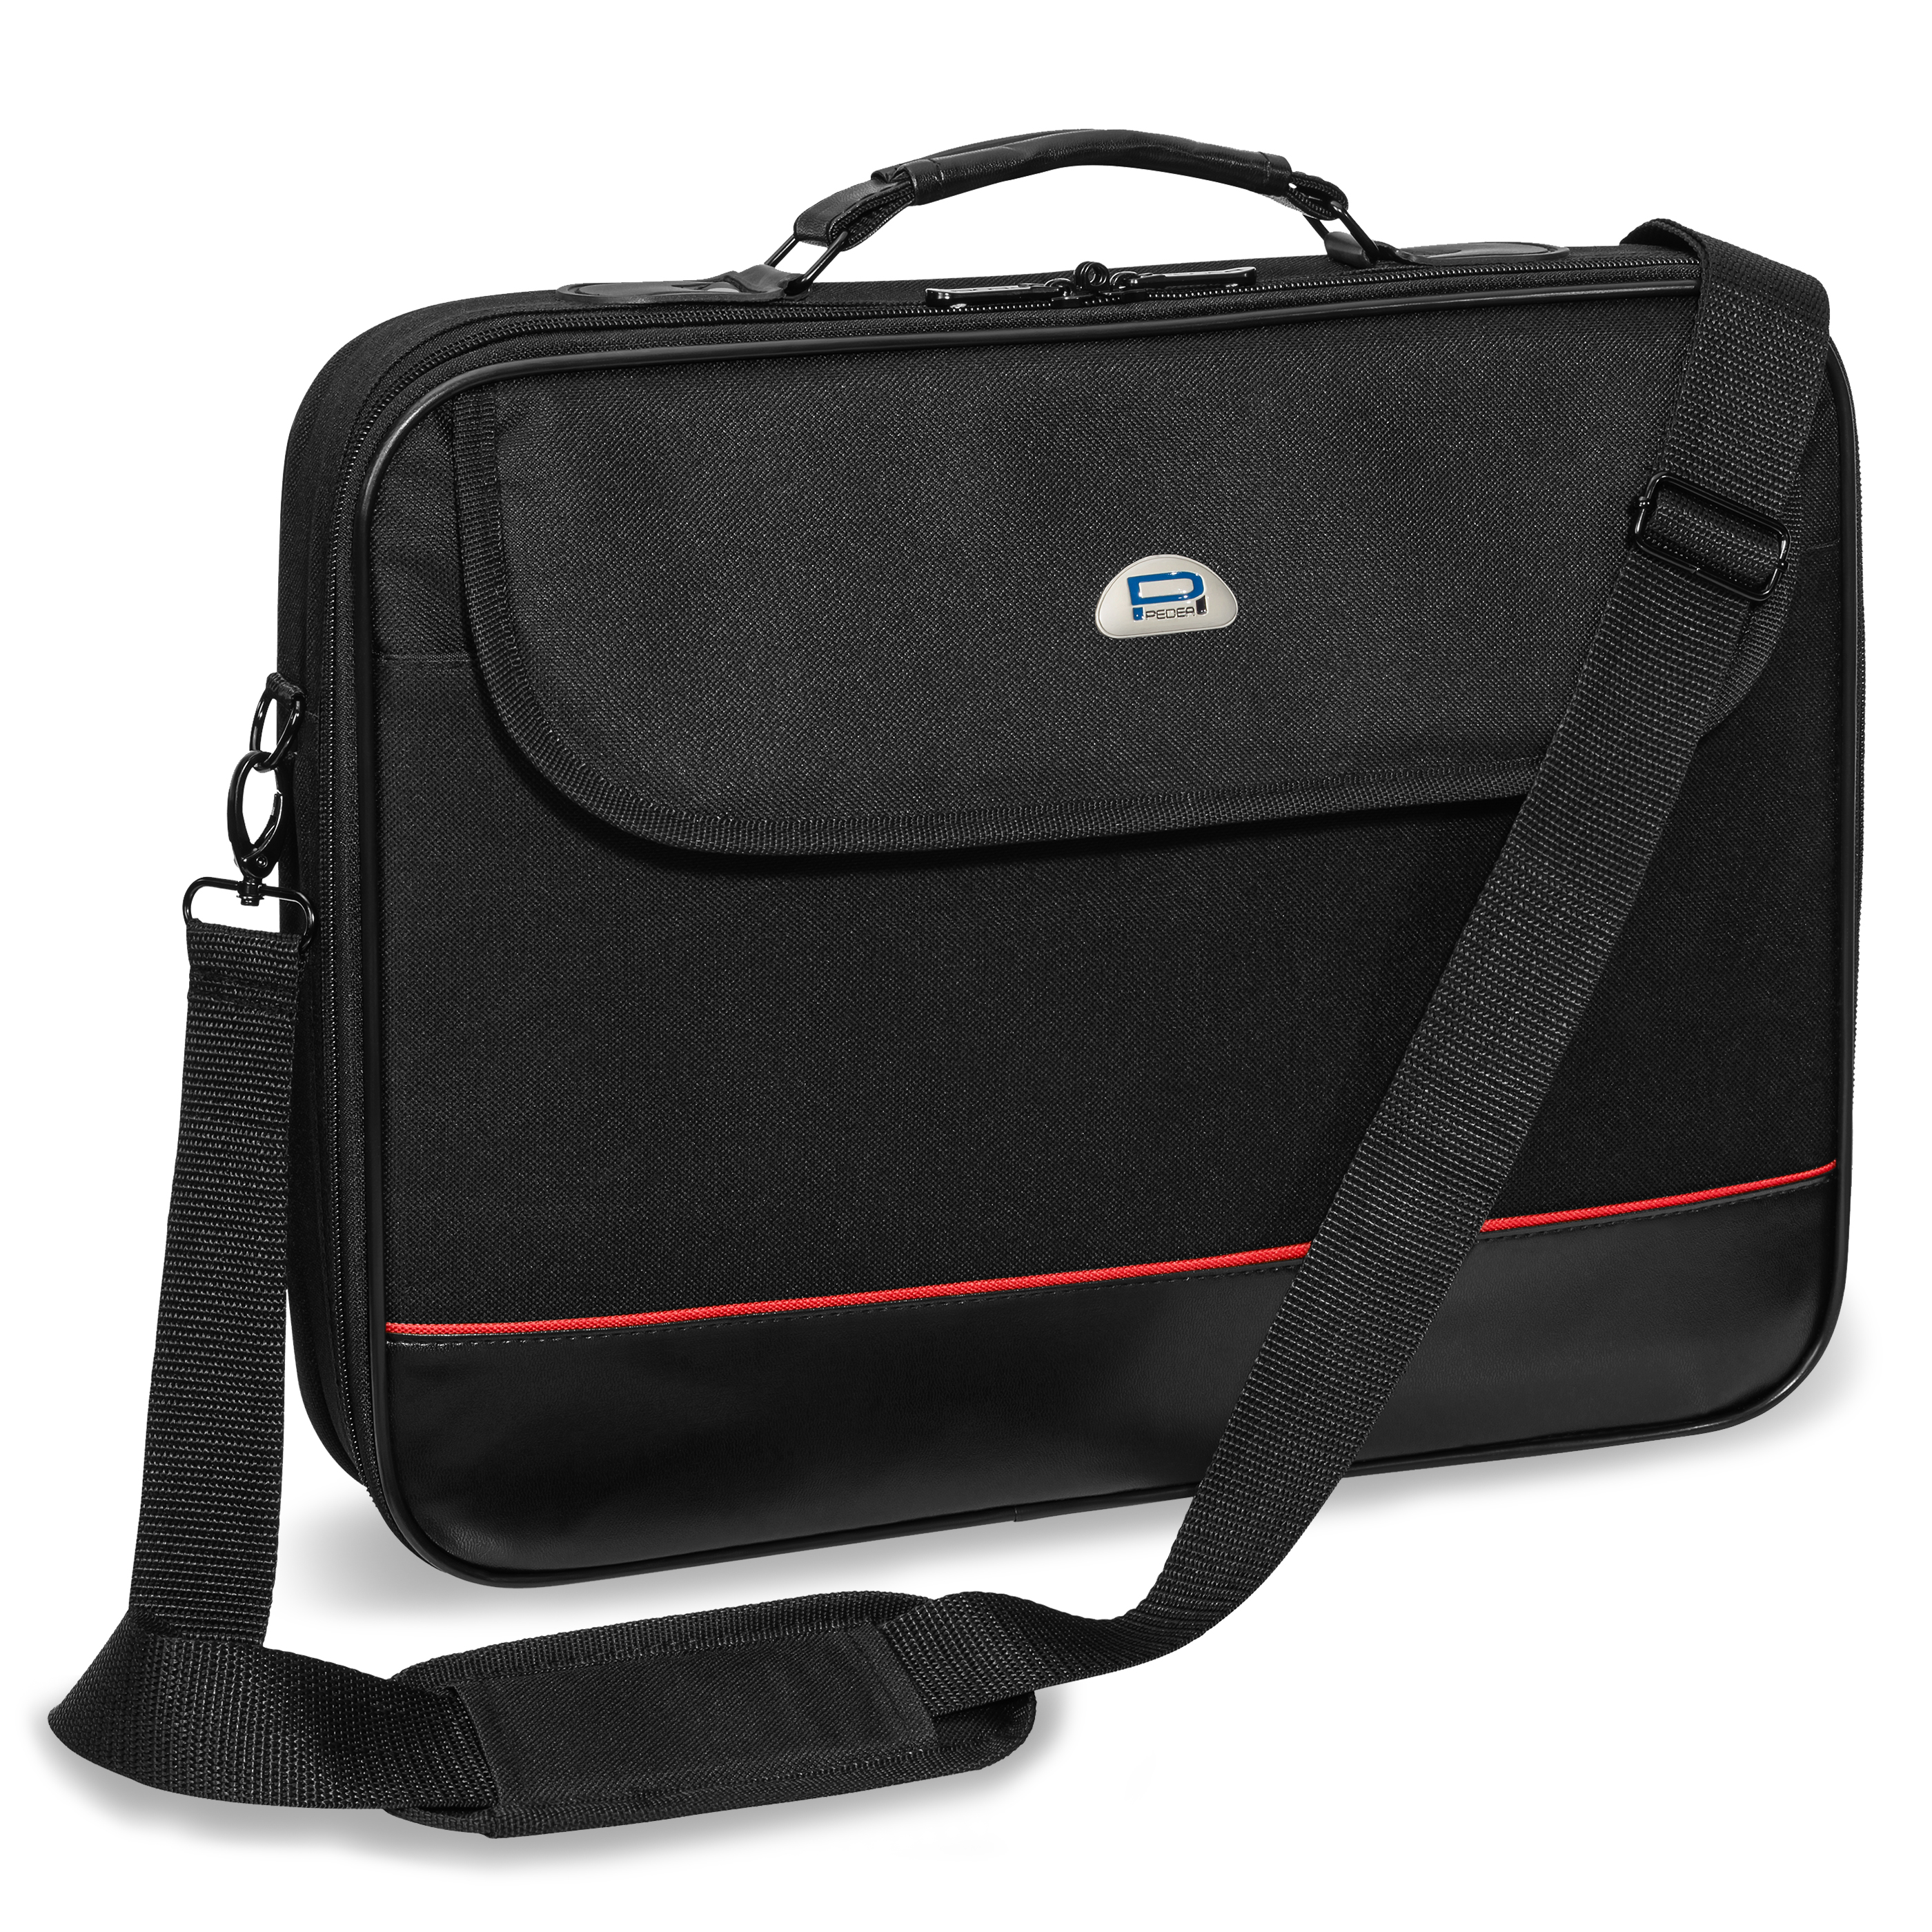 PEDEA Trendline Clamshell Laptop Bag Case 18.4